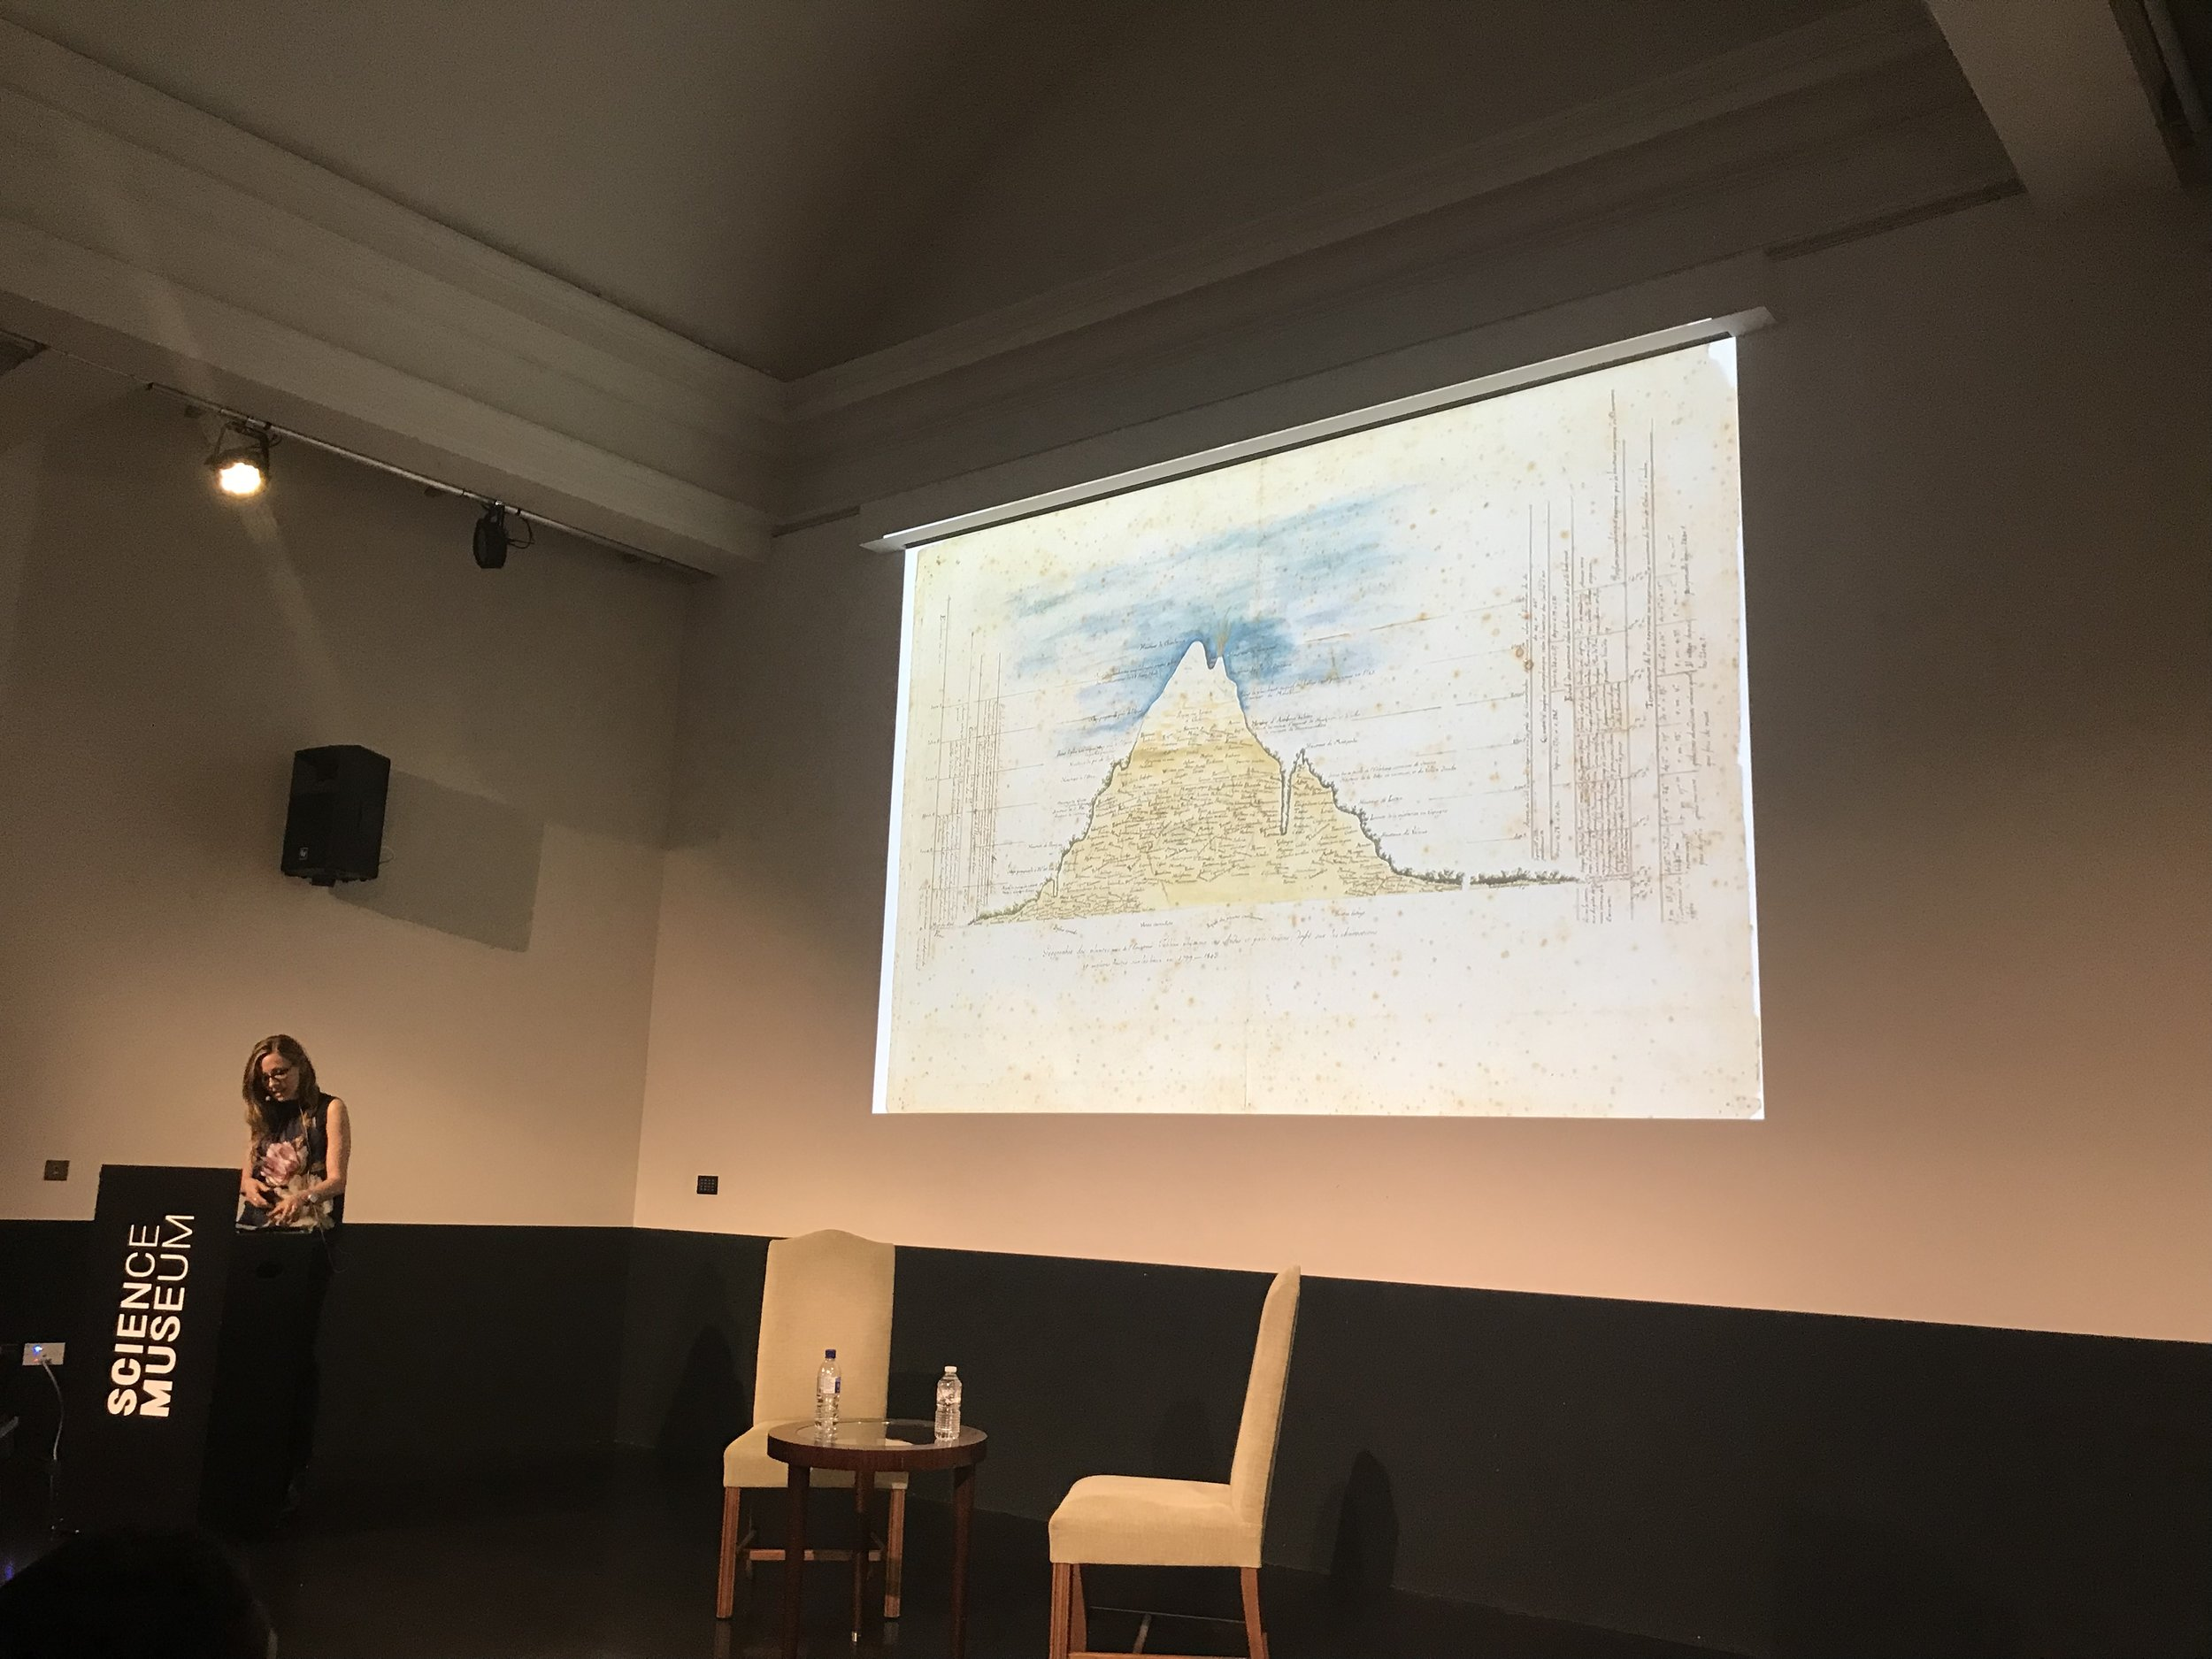 Andrea Wulf presenting Humboldt's species and stats map on Chimborazo | Credit: Talita Bateman